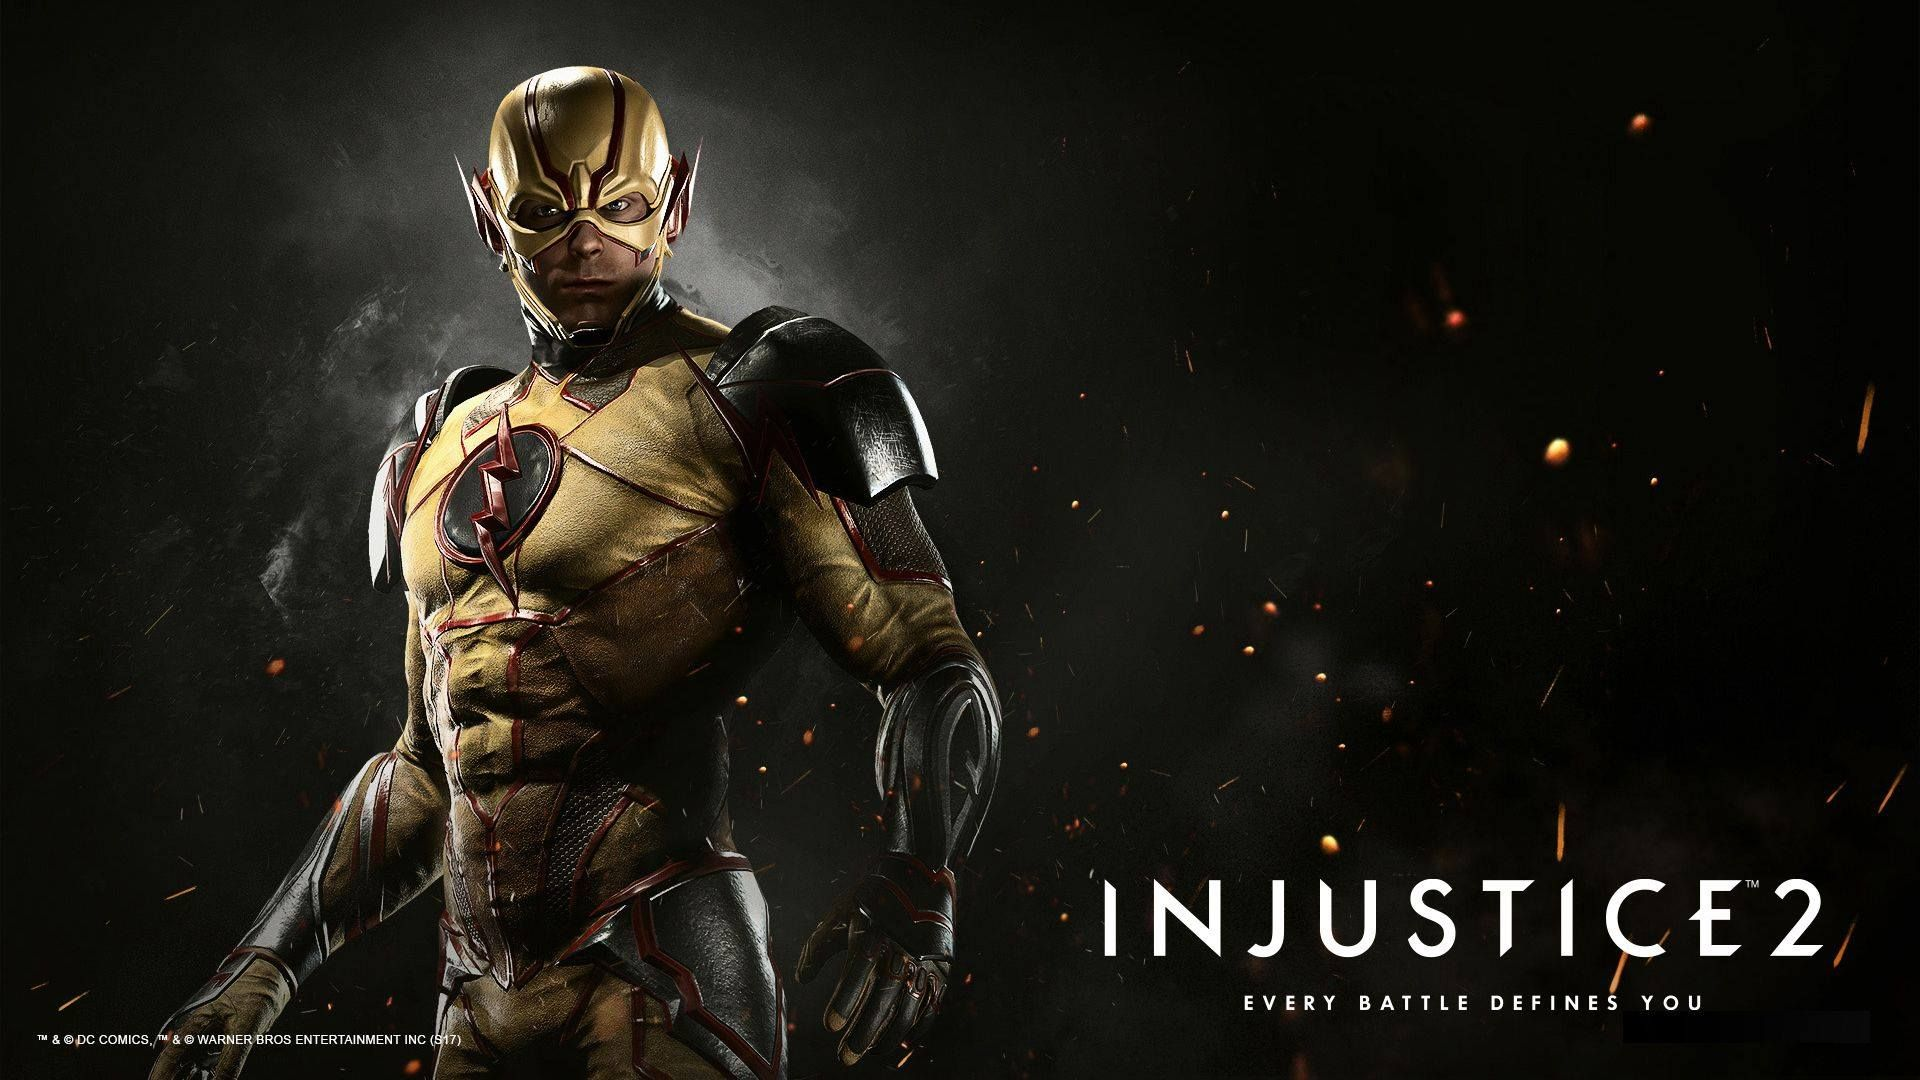 Awesome Reverse Flash Injustice 2 Game 1920x1080 Injustice 2 Injustice 2 Game Injustice